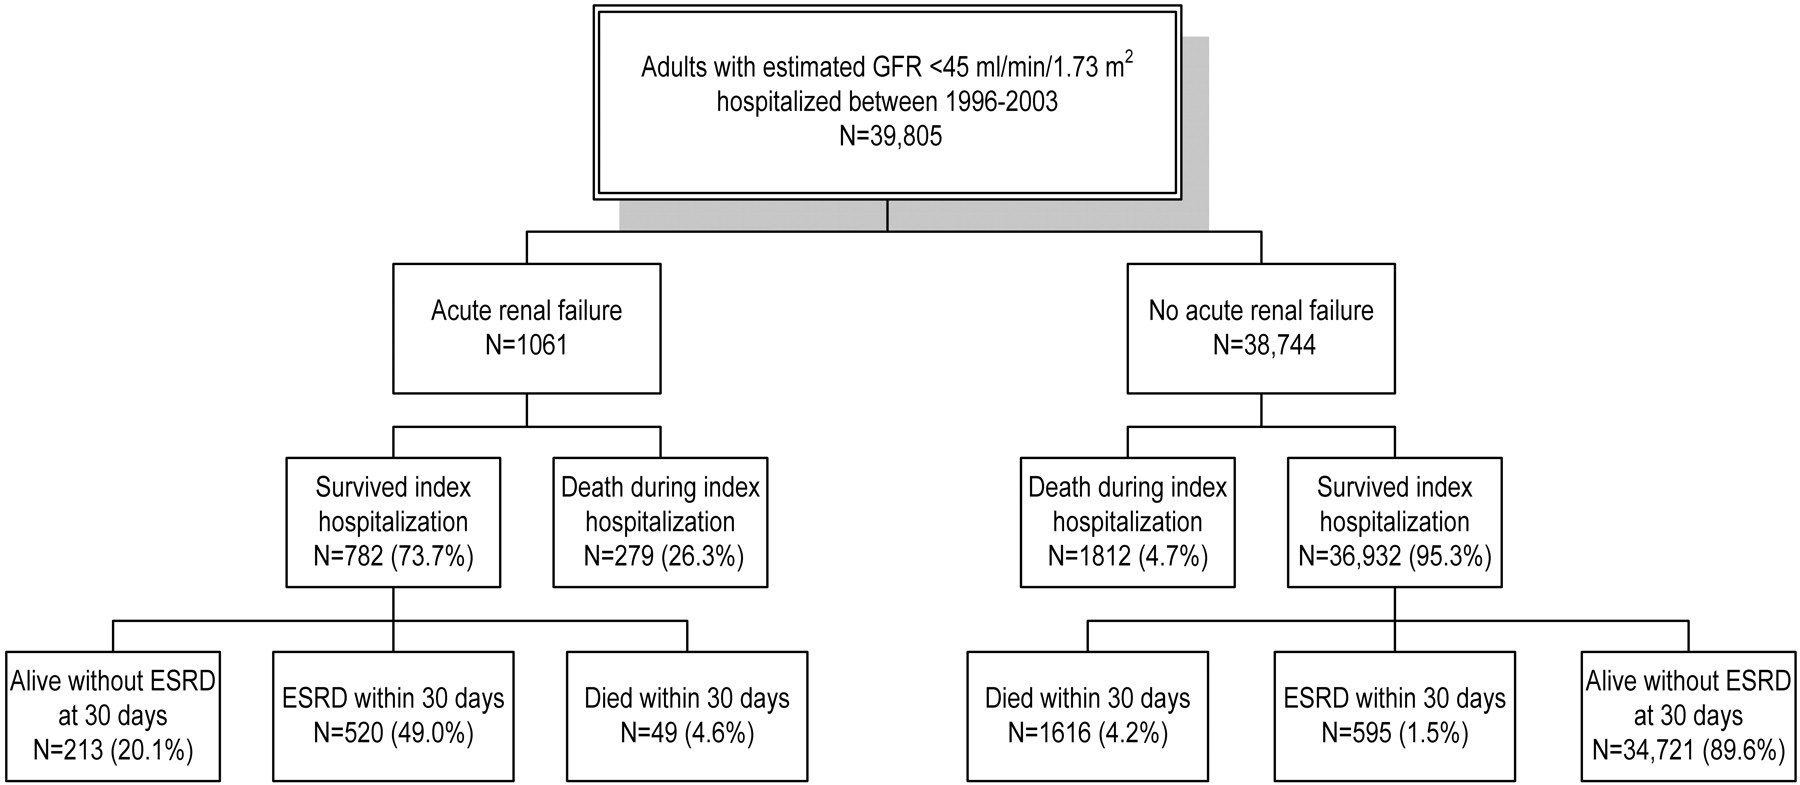 Nonrecovery Of Kidney Function And Death After Acute On Chronic Renal Failure American Society Of Nephrology